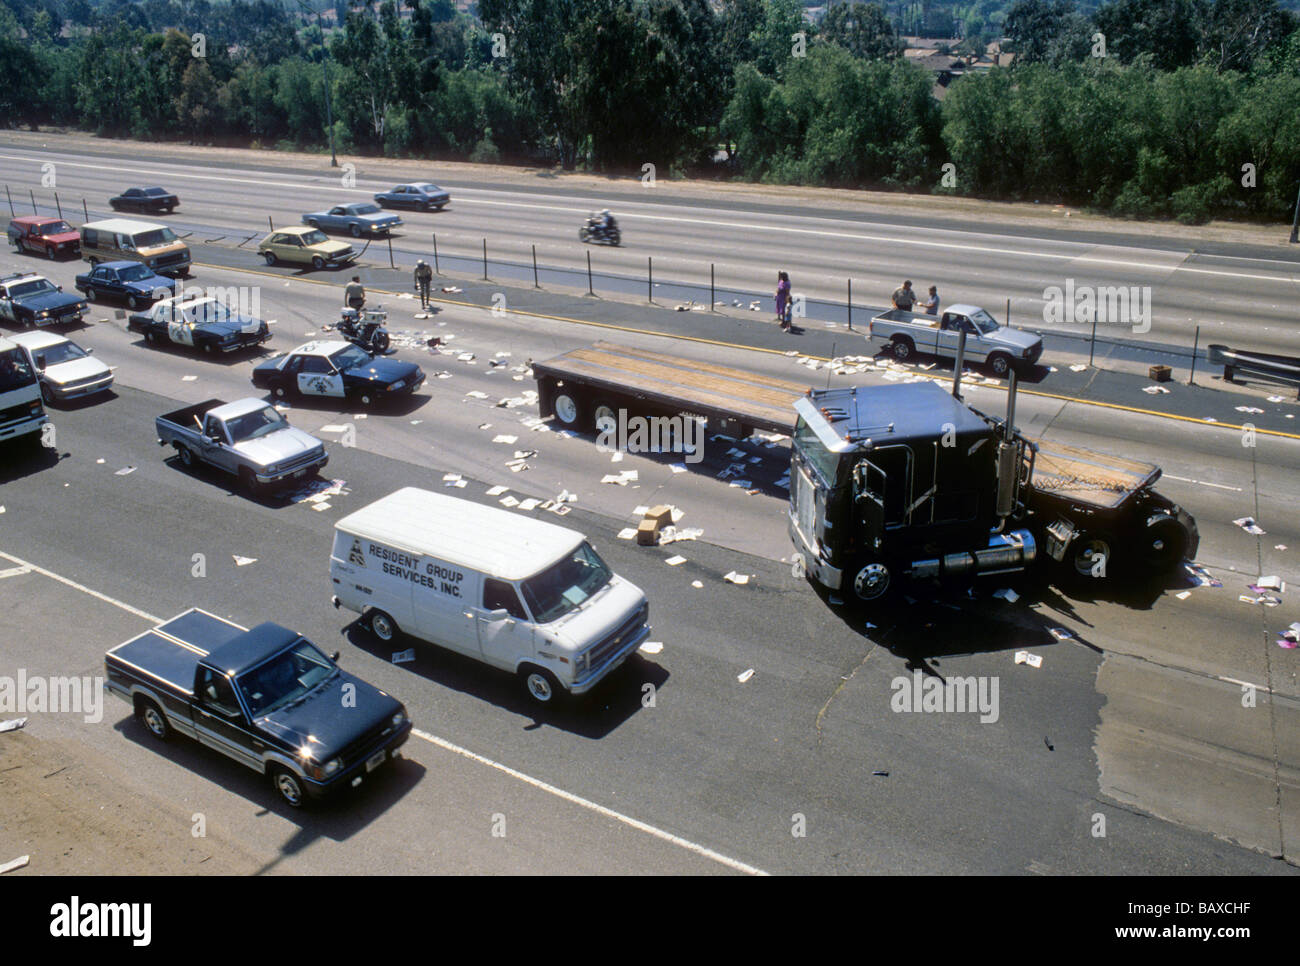 freeway highway accident truck jacknife crash spill traffic